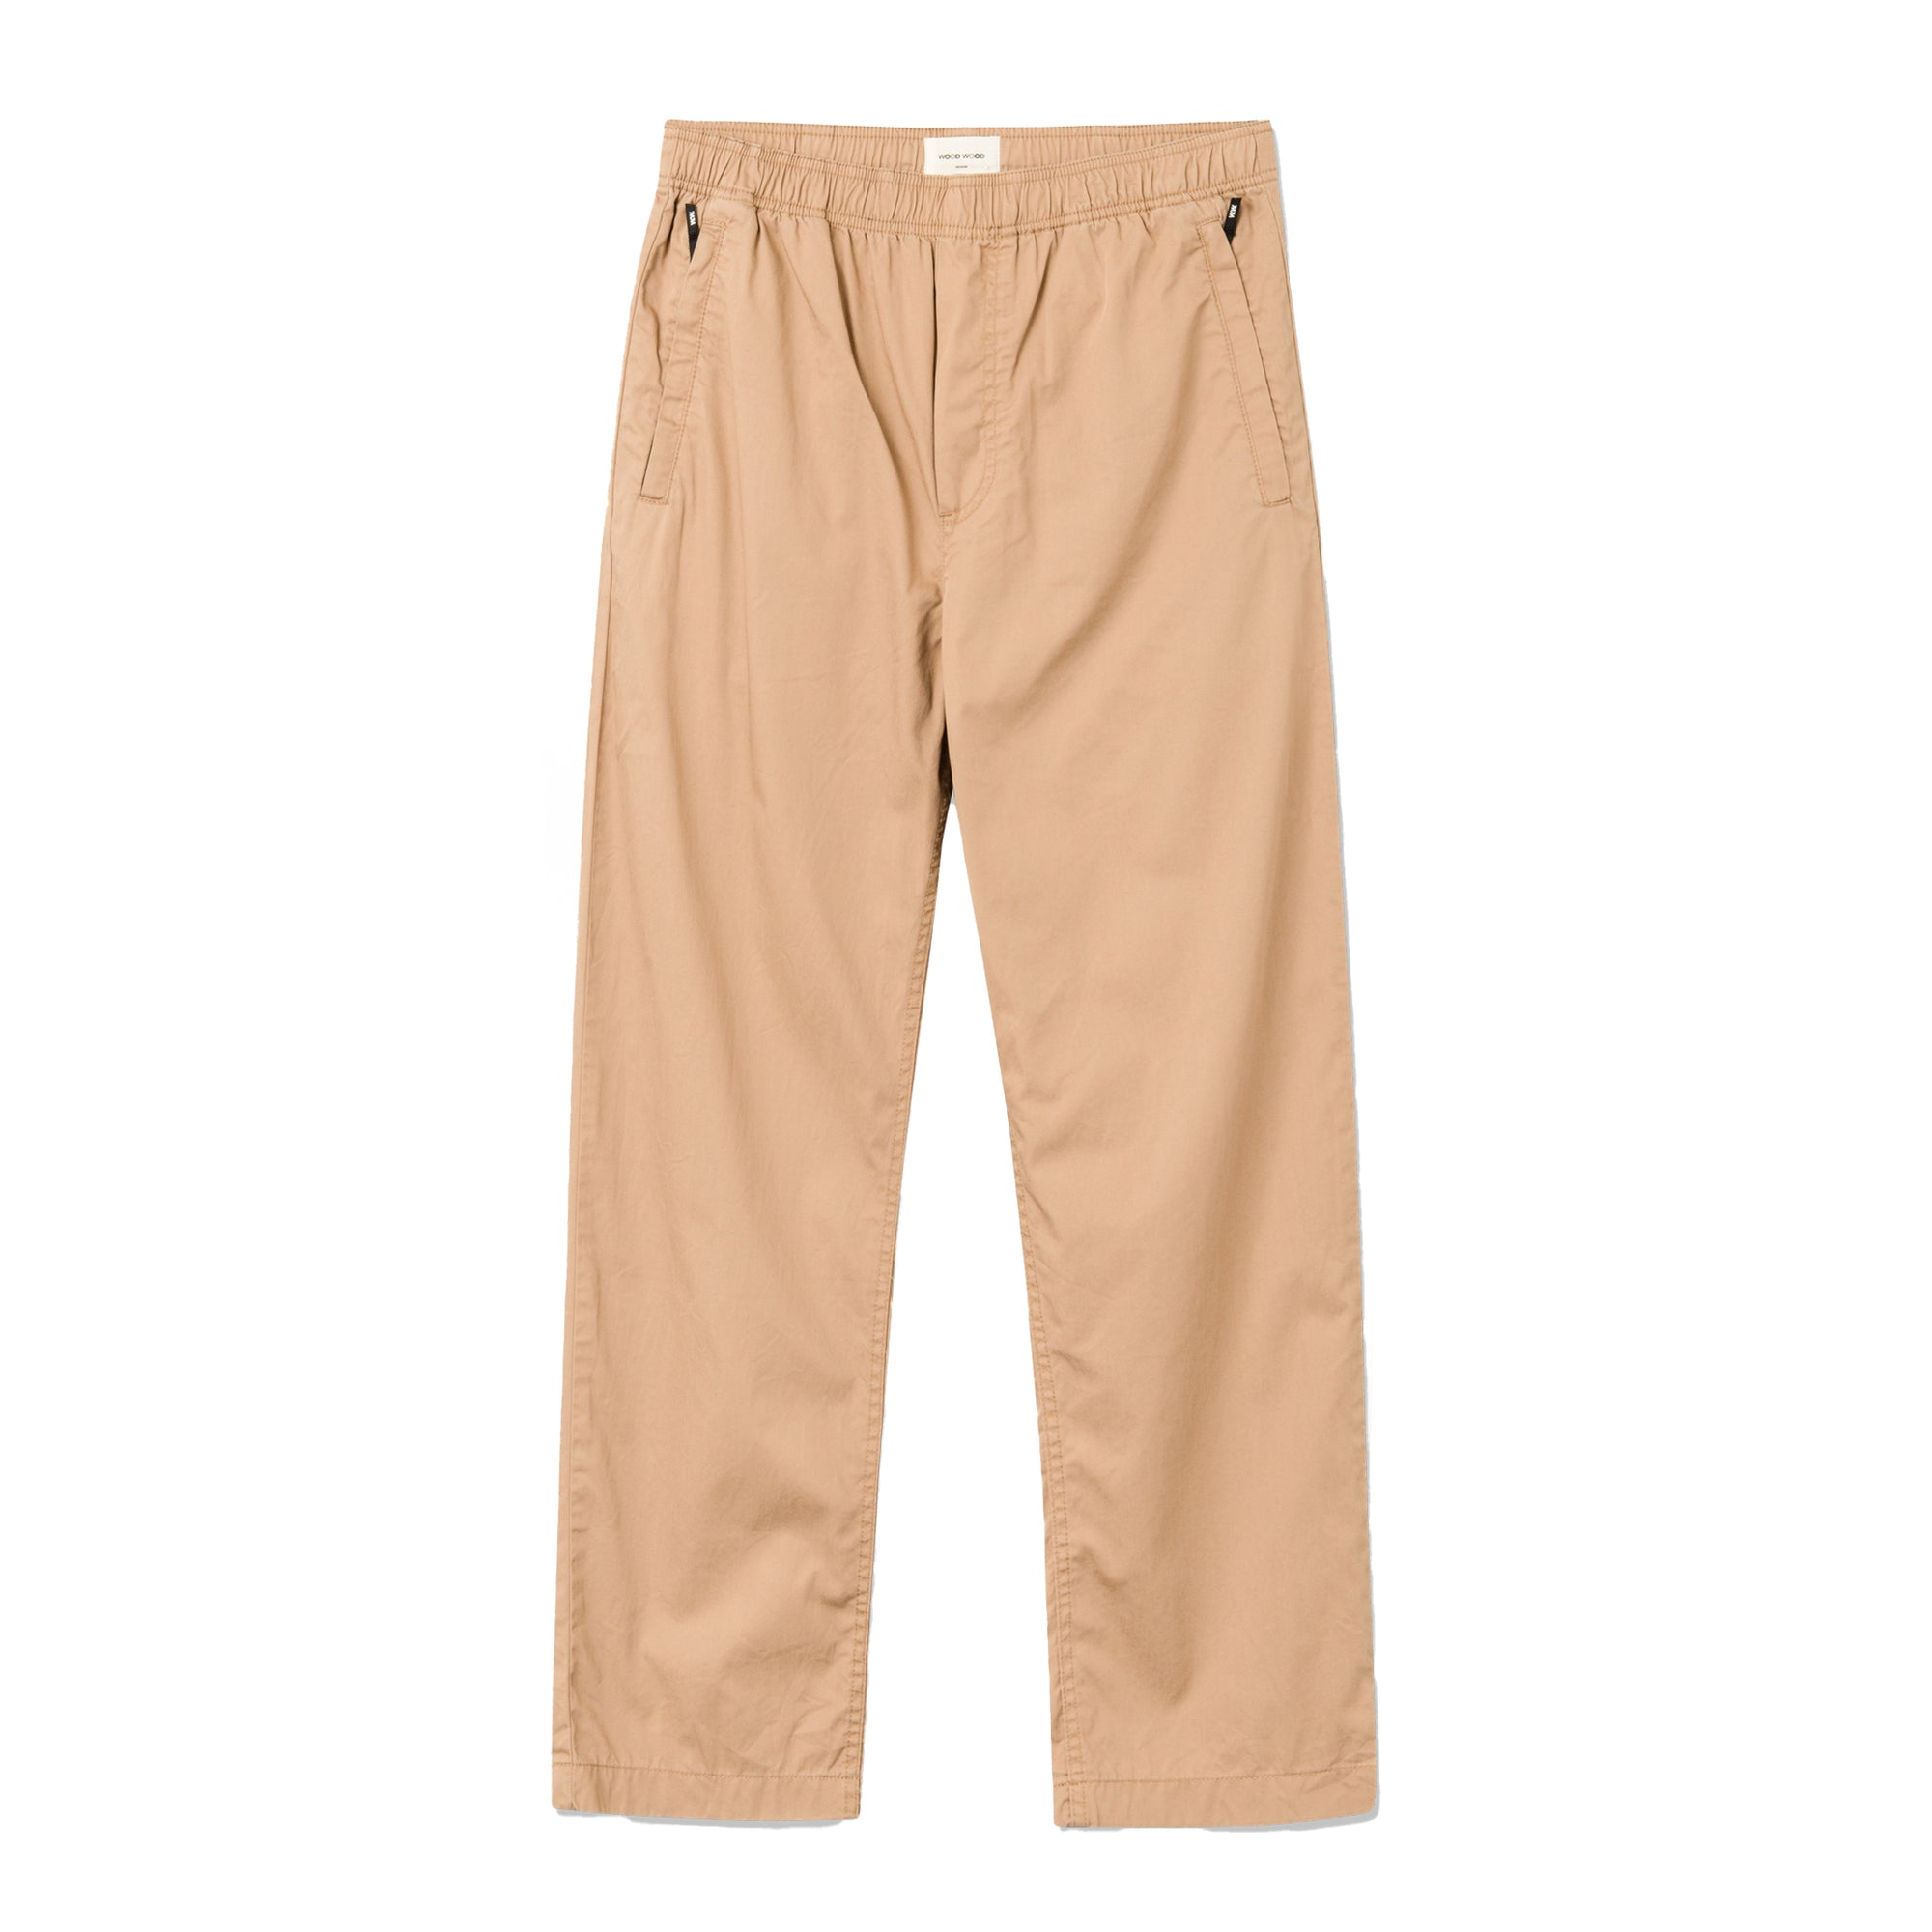 Wood Wood Stanley Twill Trouser: Khaki - The Union Project